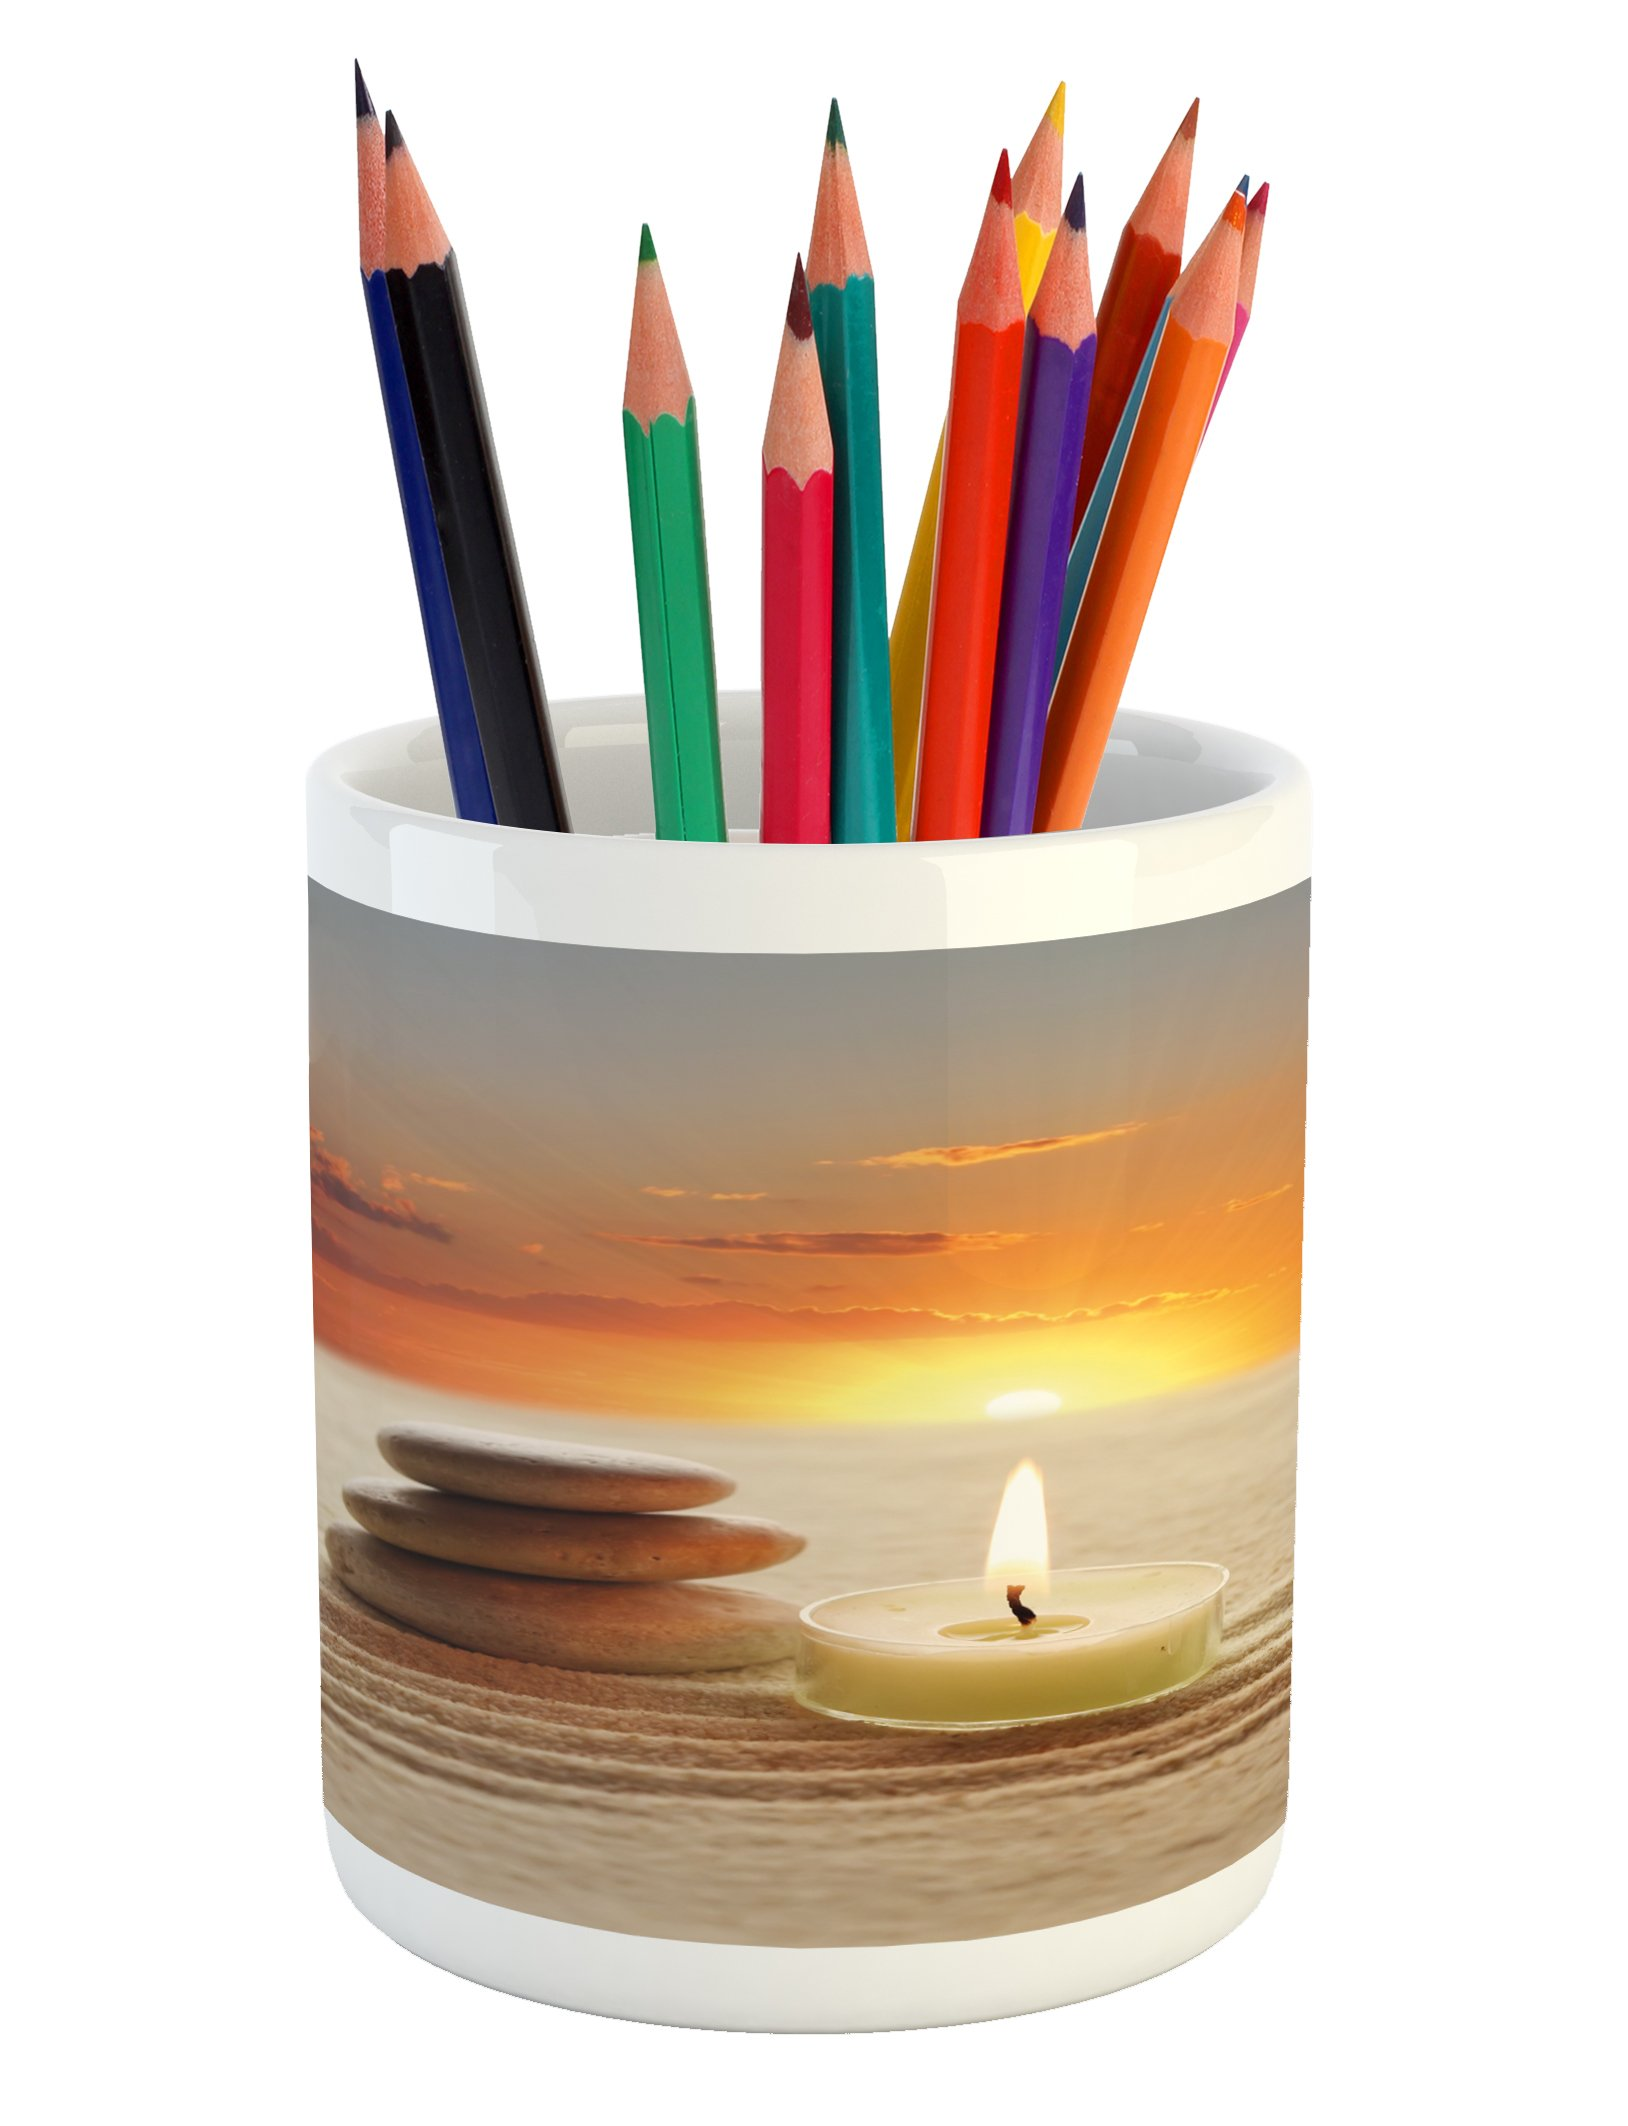 Lunarable Spa Pencil Pen Holder, Little Candle with Three Stones Middle of Sand with Sunset Serene Landscape, Printed Ceramic Pencil Pen Holder for Desk Office Accessory, White Brown and Orange